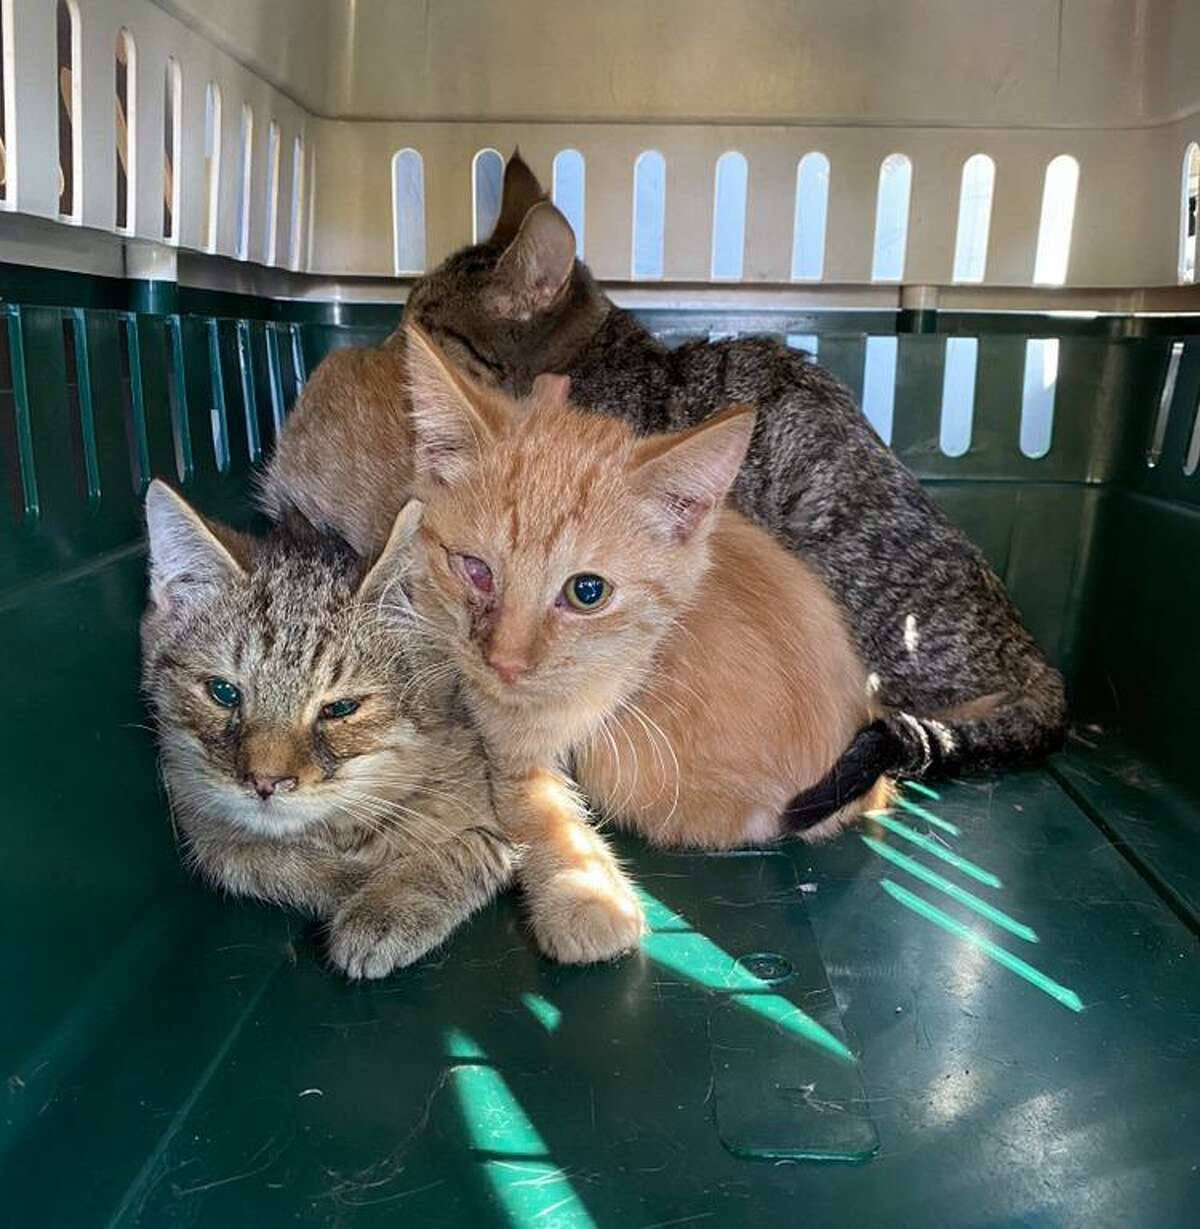 The Dan Cosgrove Animal Shelter is struggling to care for 22 new cats that came from a hoarding situation at a Branford house where they had been living for several months with no humans present. Many of the cats are still at the veterinarian but shelter staff and volunteers are caring for the ones that have returned from the vet.